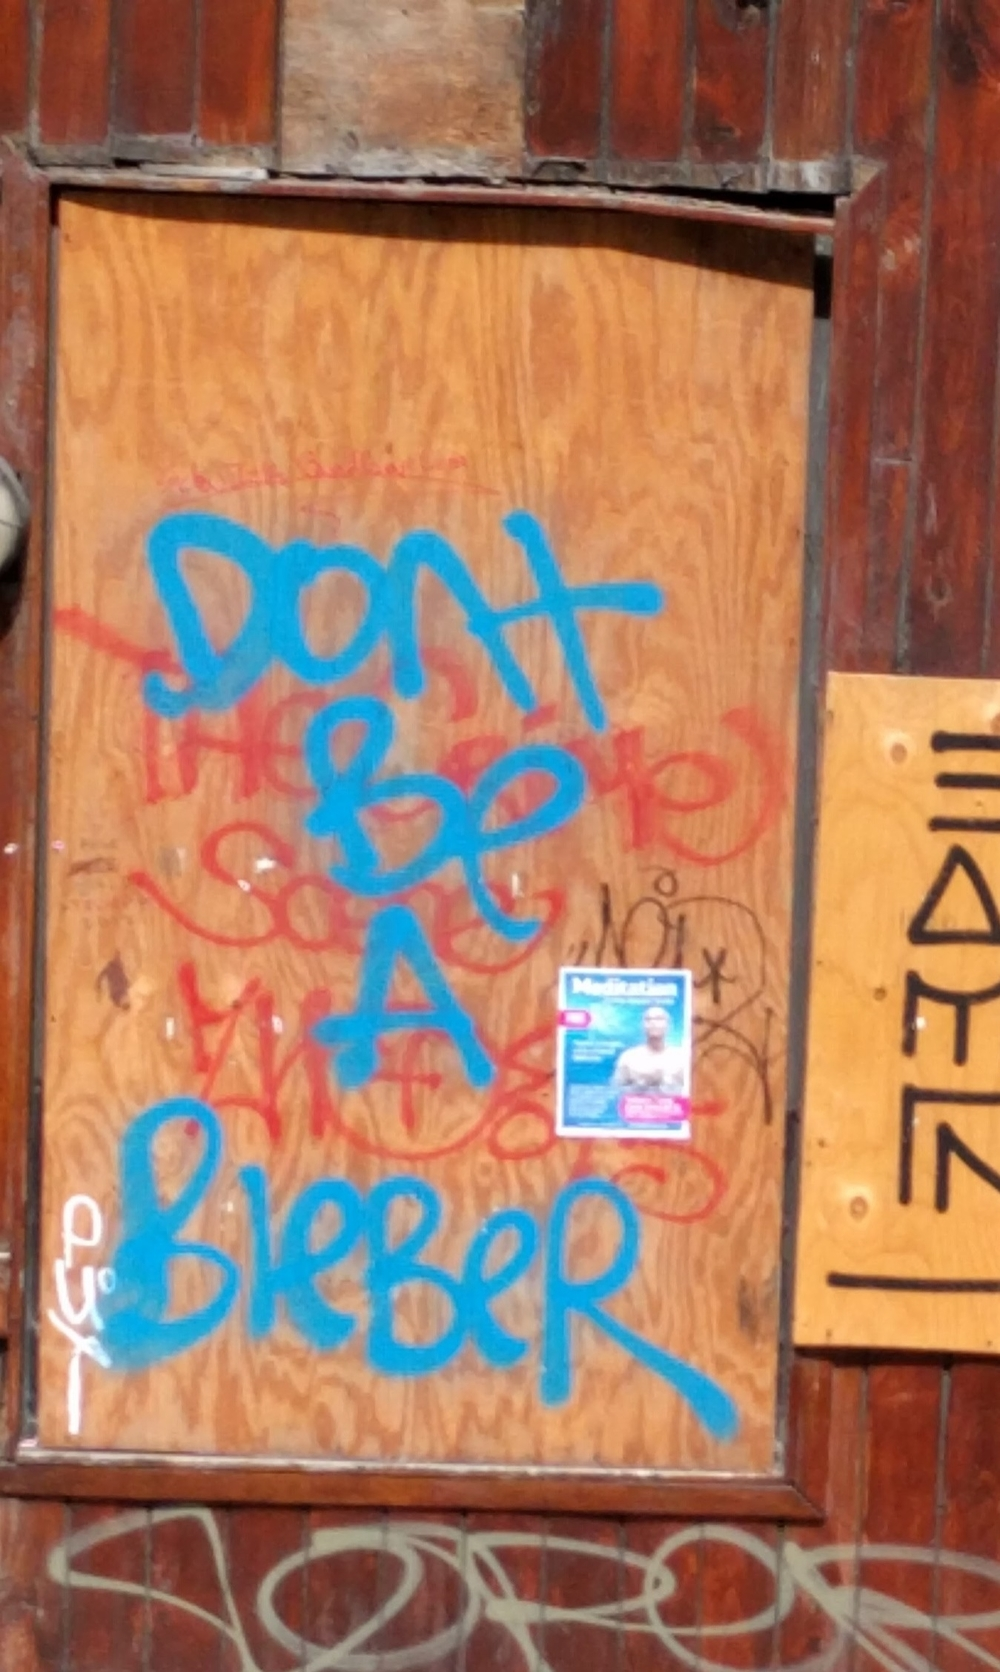 Just some hilarious graffiti we saw during the tour